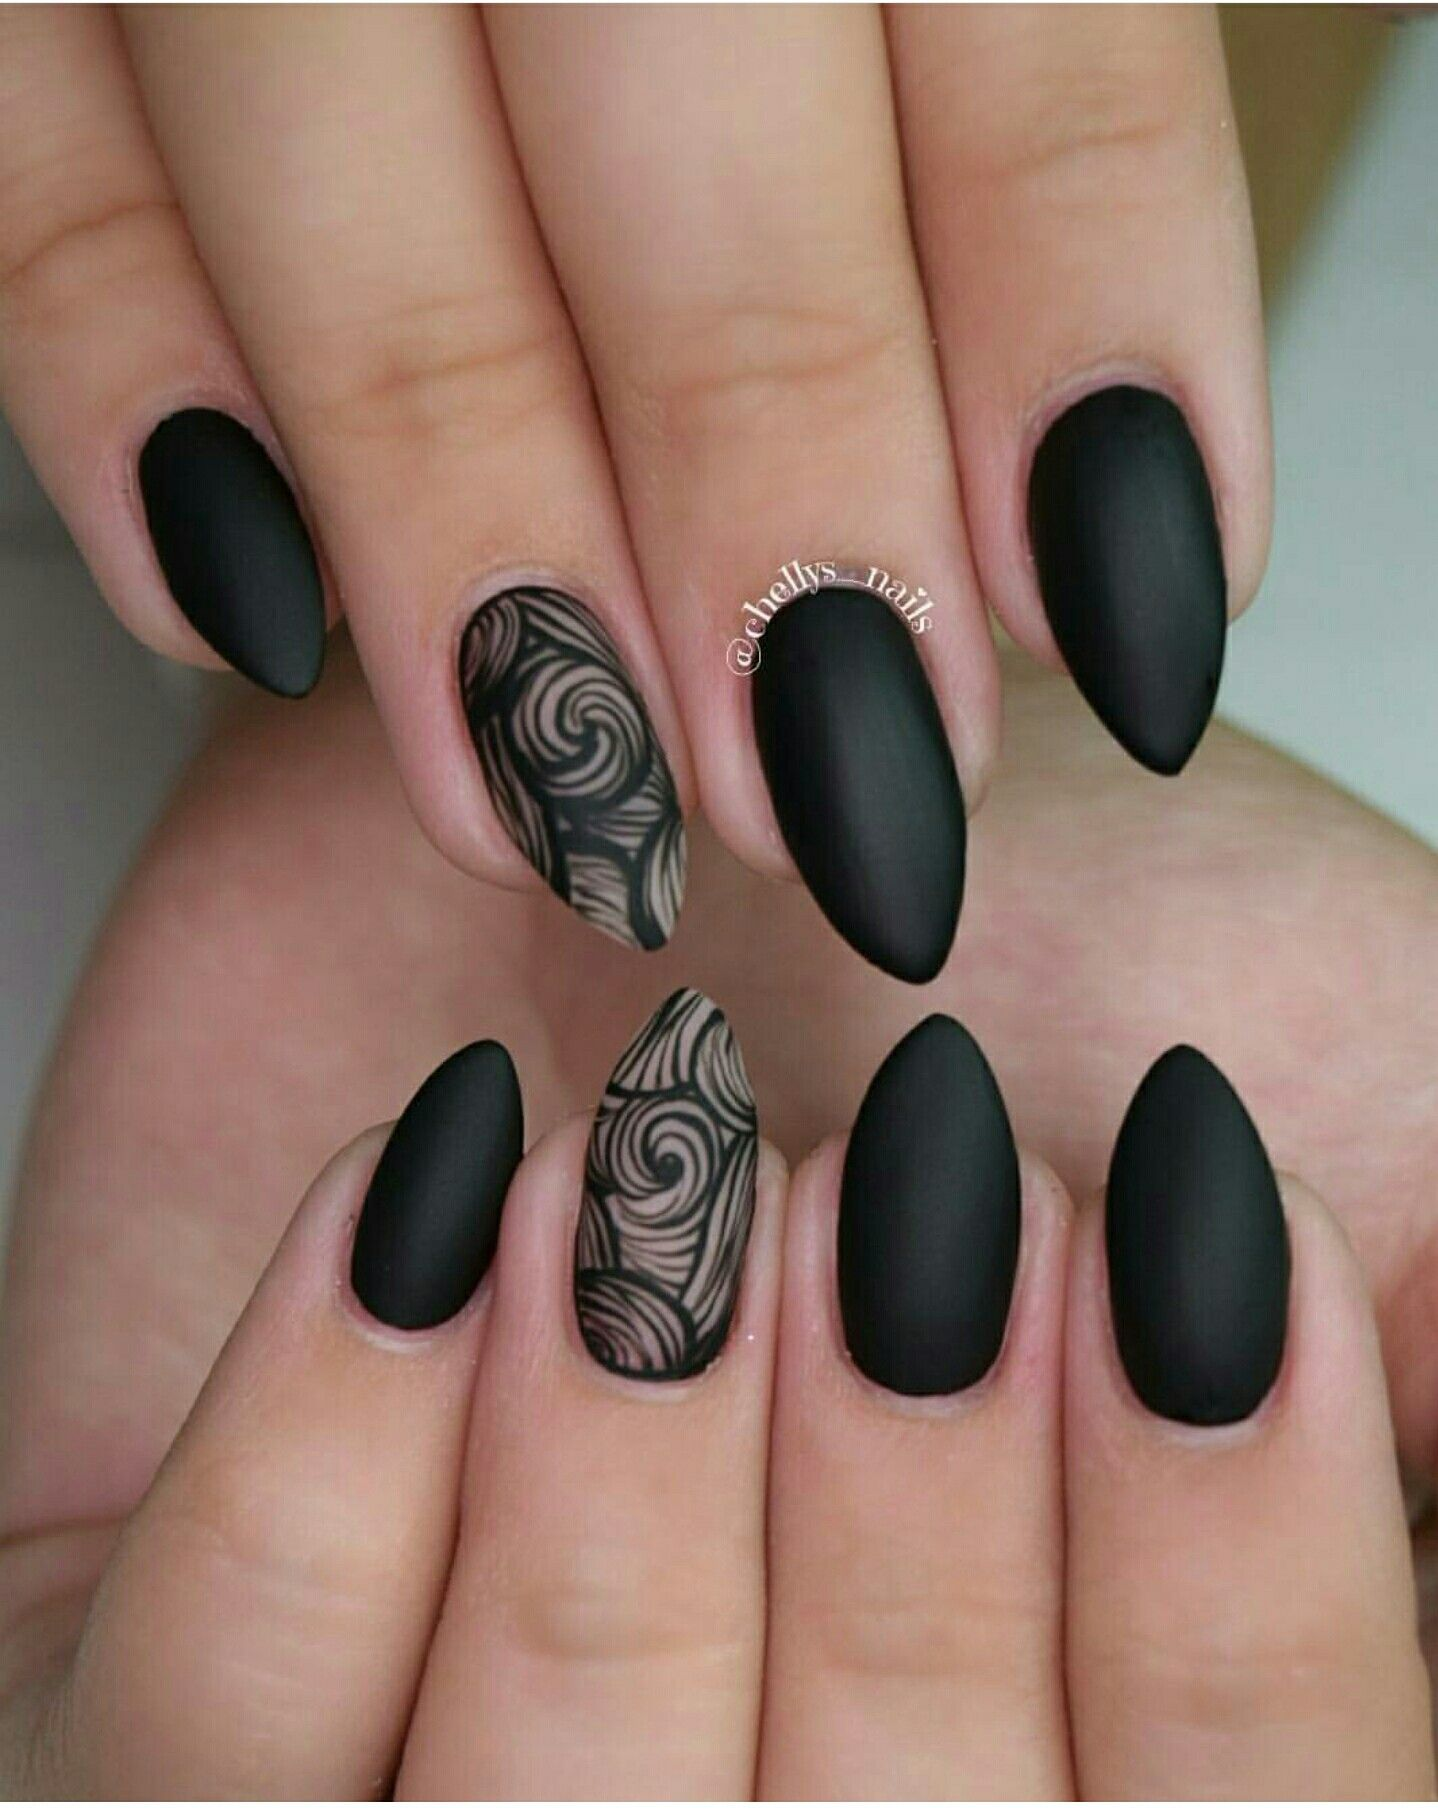 Pin by Kate Laughlin on nails | Pinterest | Nails games